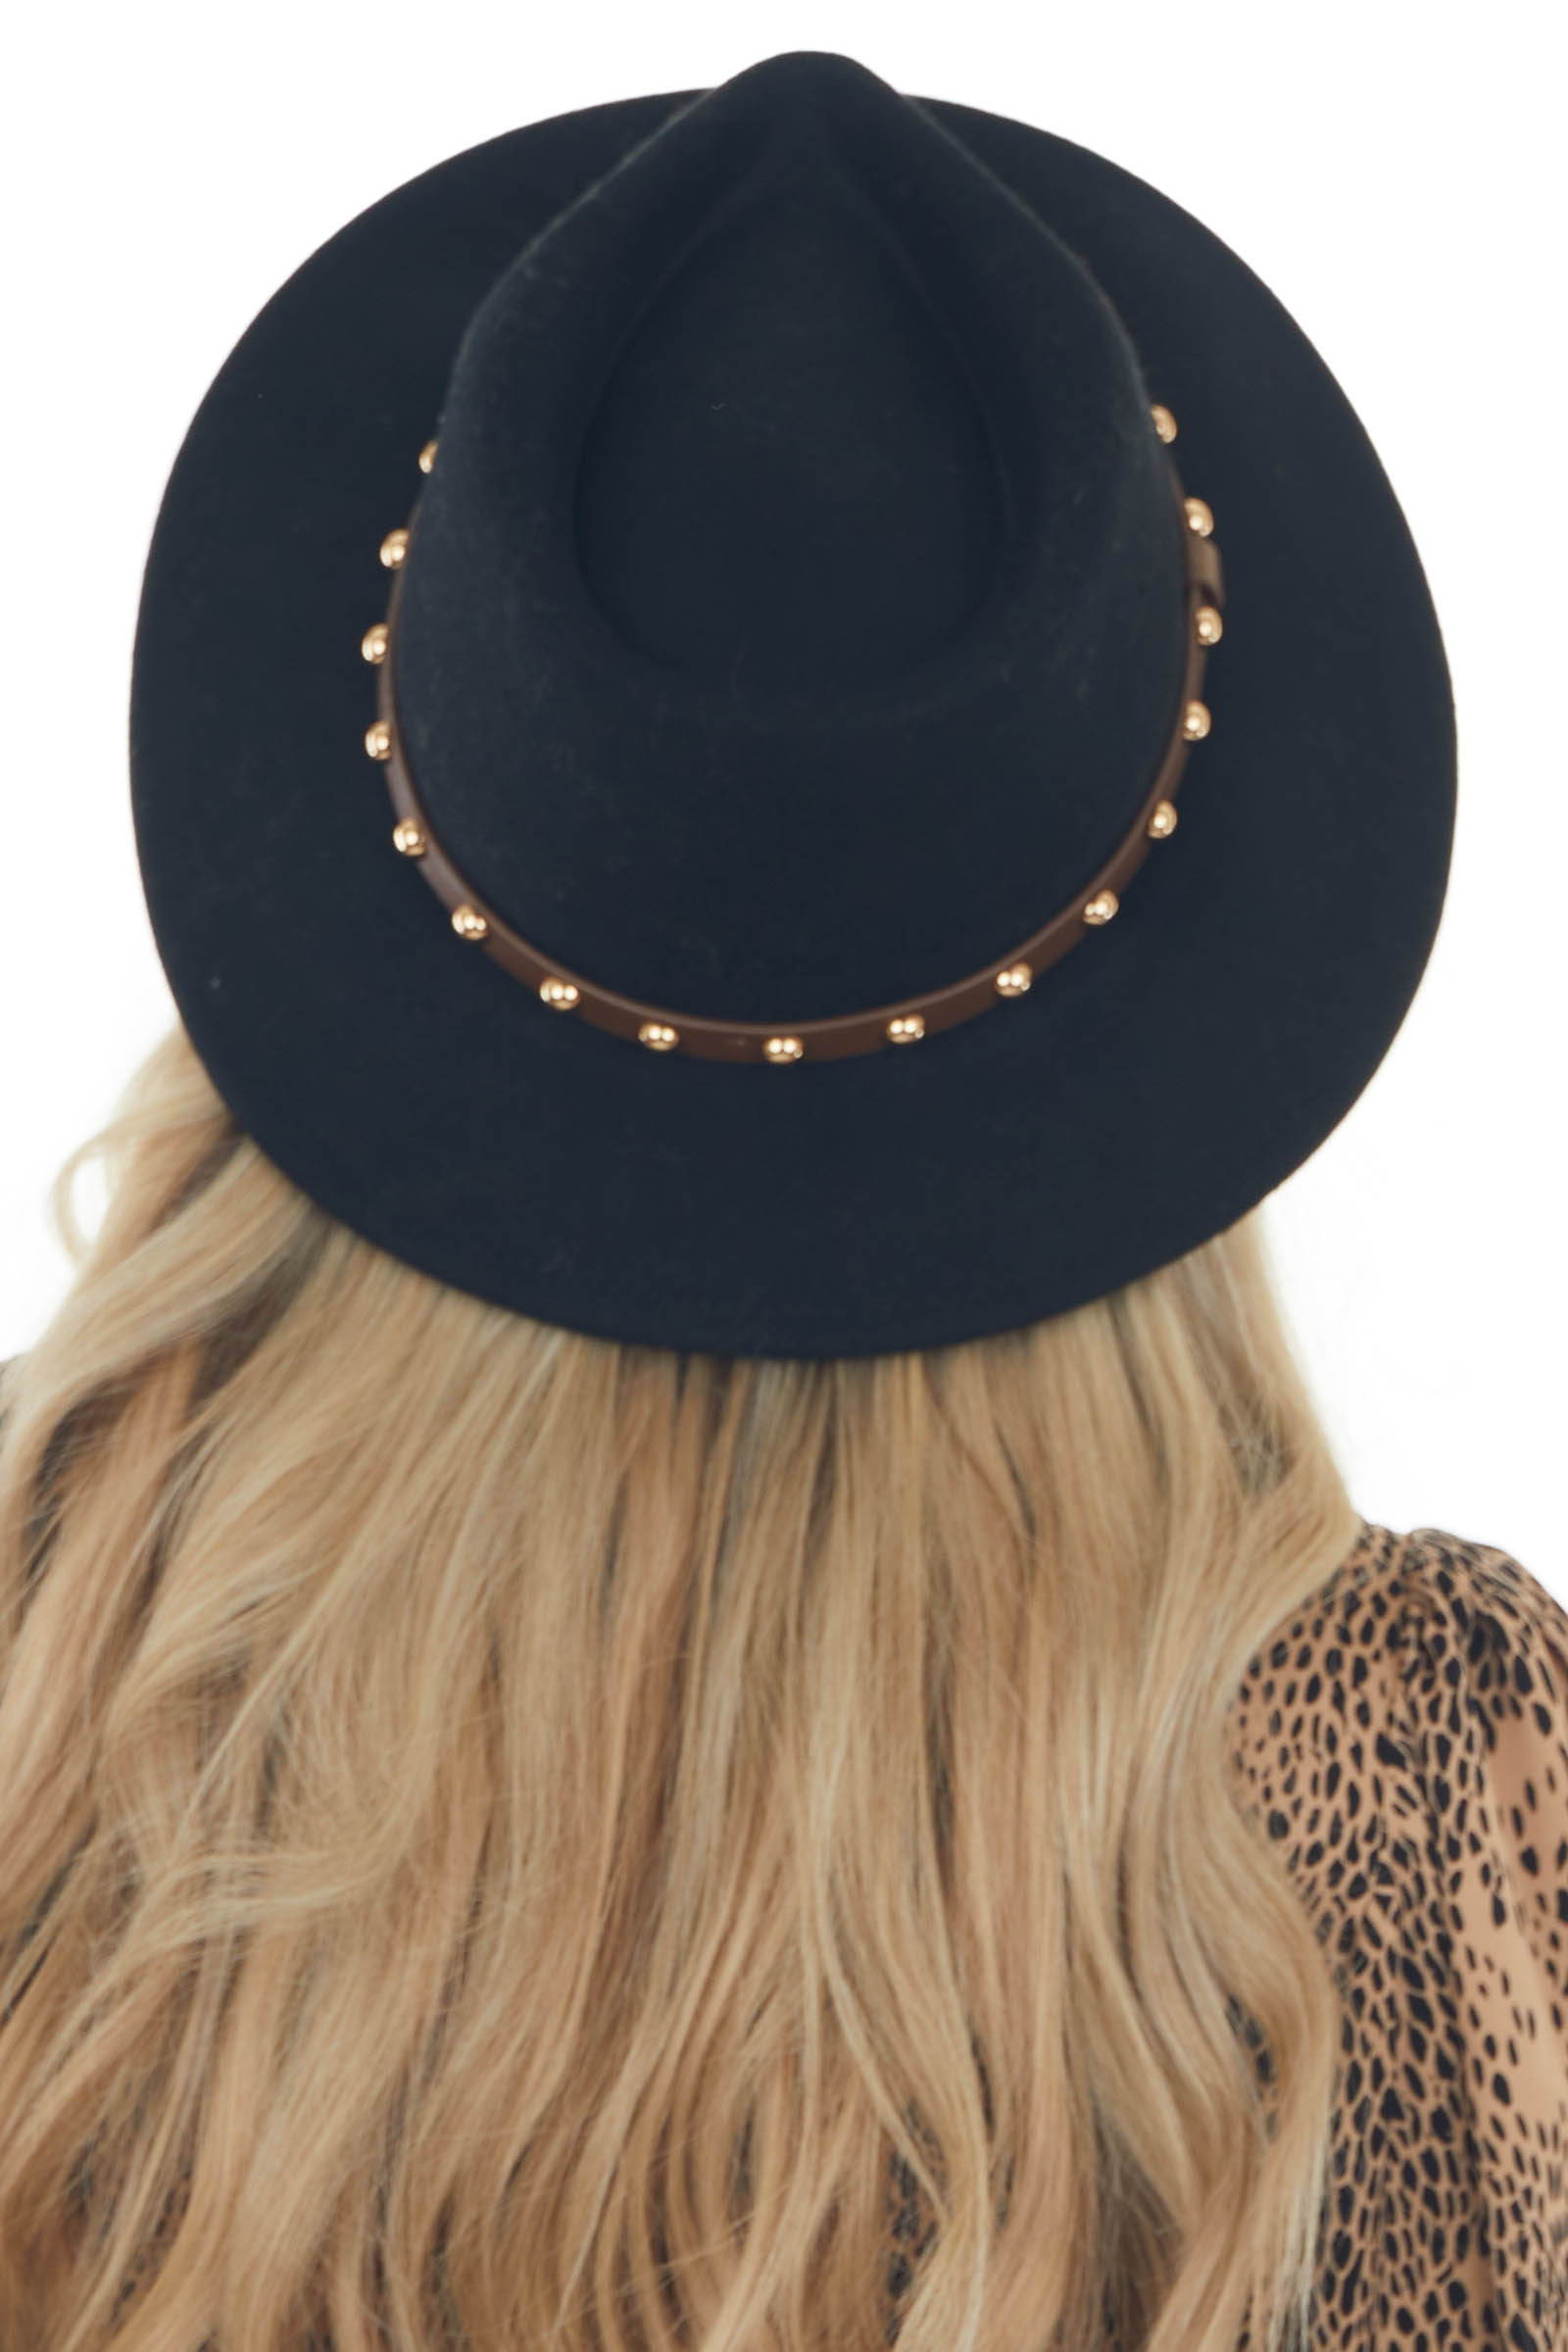 Black Wool Gambler Hat with Studded Band